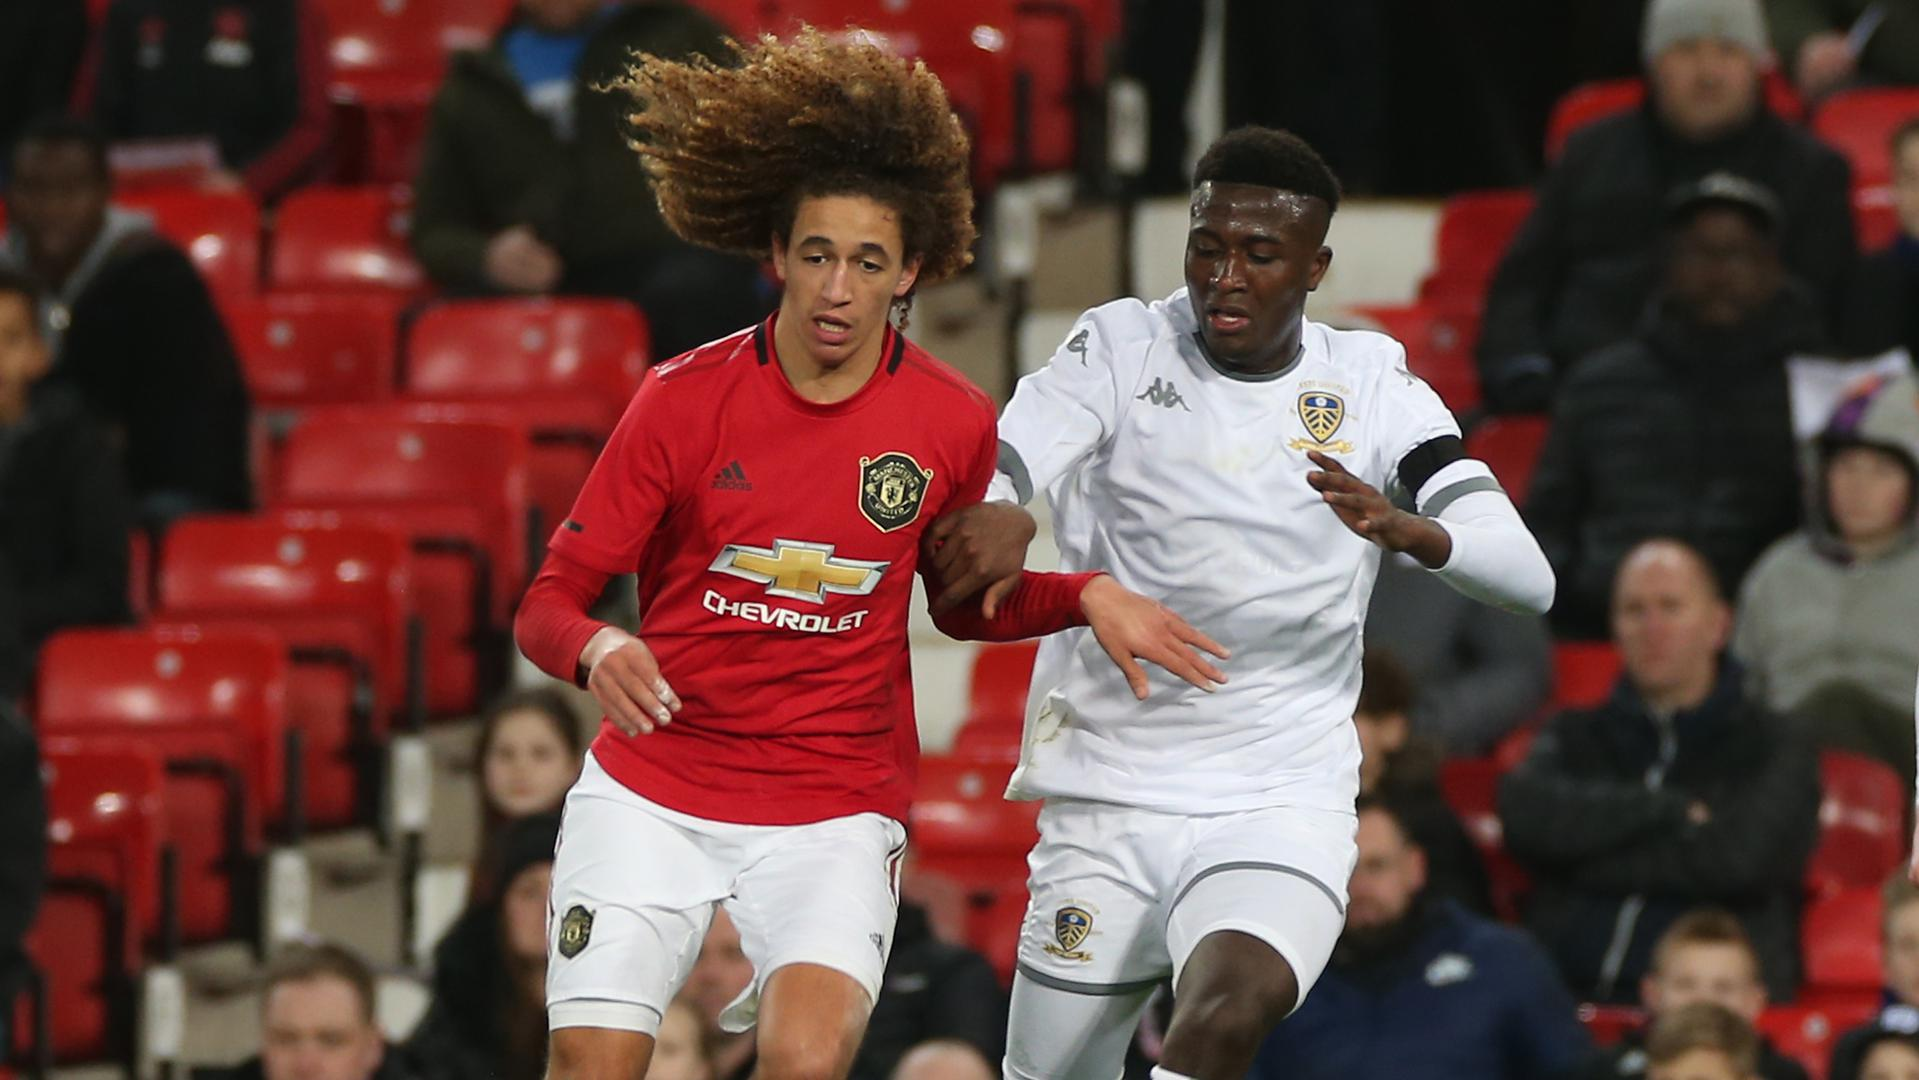 Match Report Man Utd V Leeds FA Youth Cup 5 February 2020